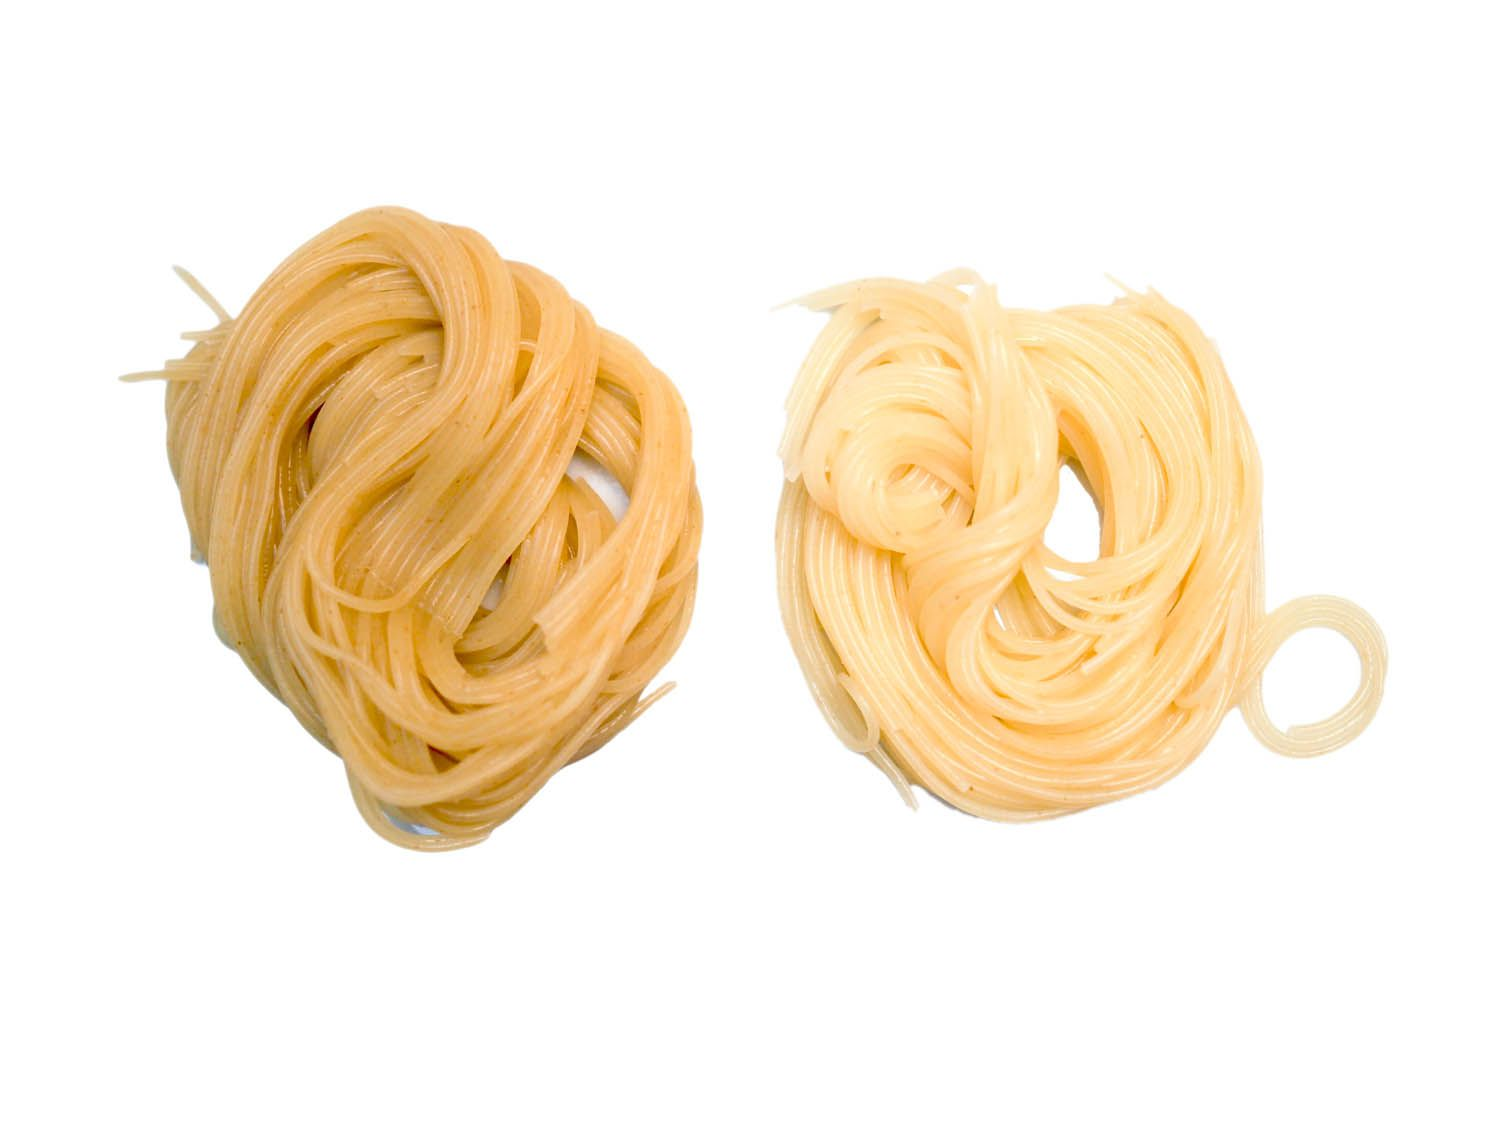 Side by side comparison of angel hair pasta cooked with baking soda and without. The pasta cooked with baking soda has a deeper yellow color.